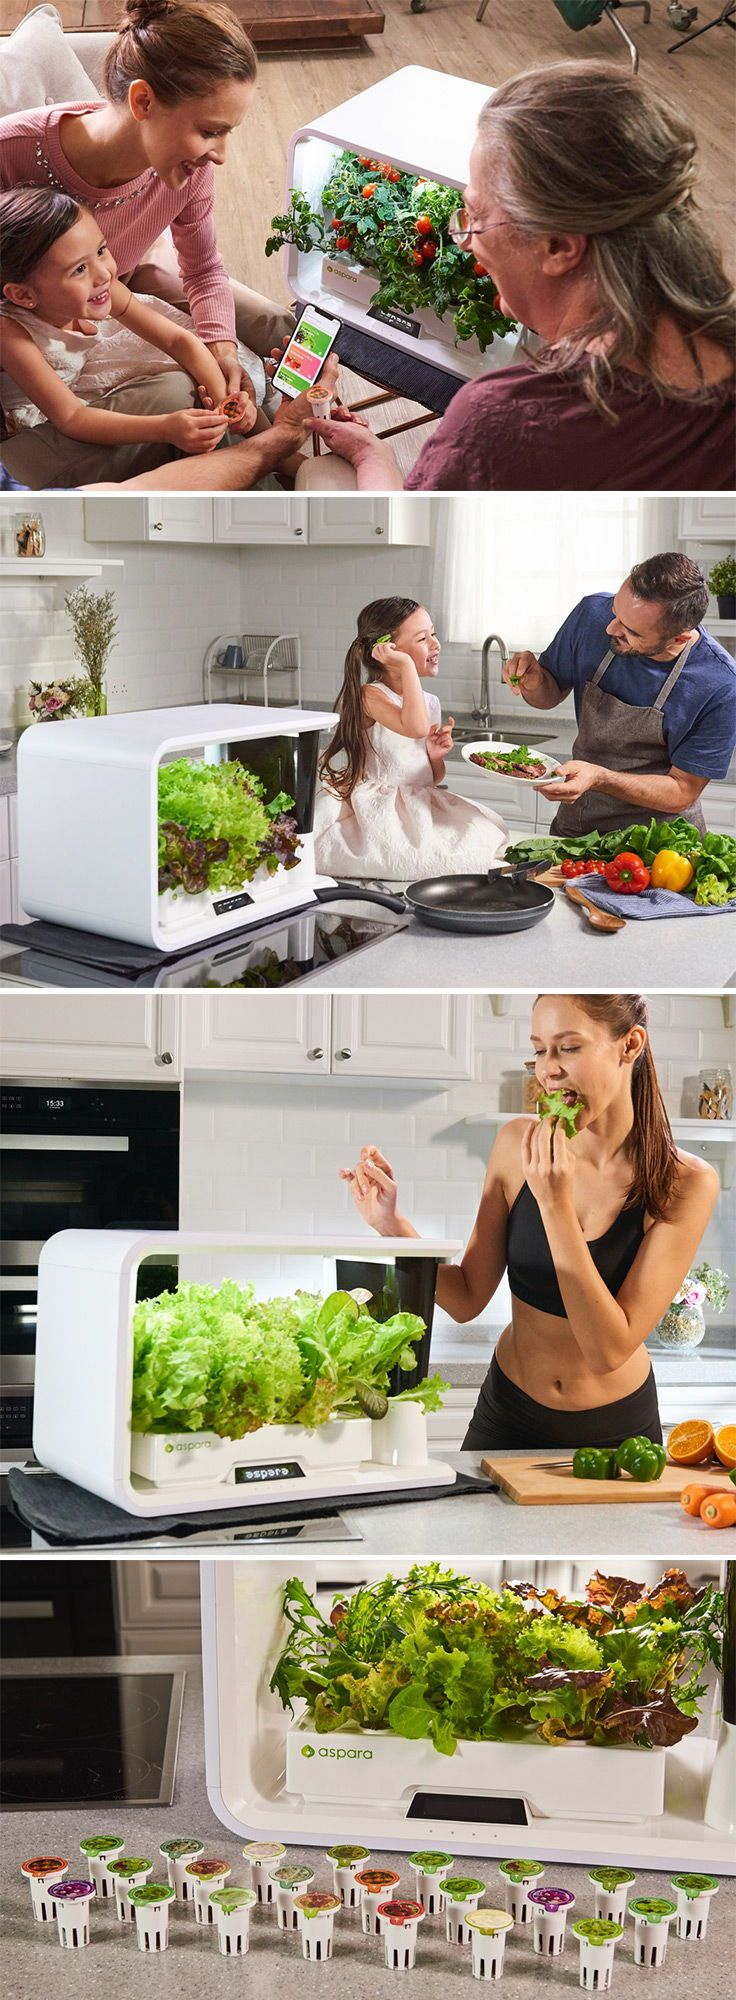 Aspara Is A Smart Indoor Garden That Encourages The Growth 400 x 300